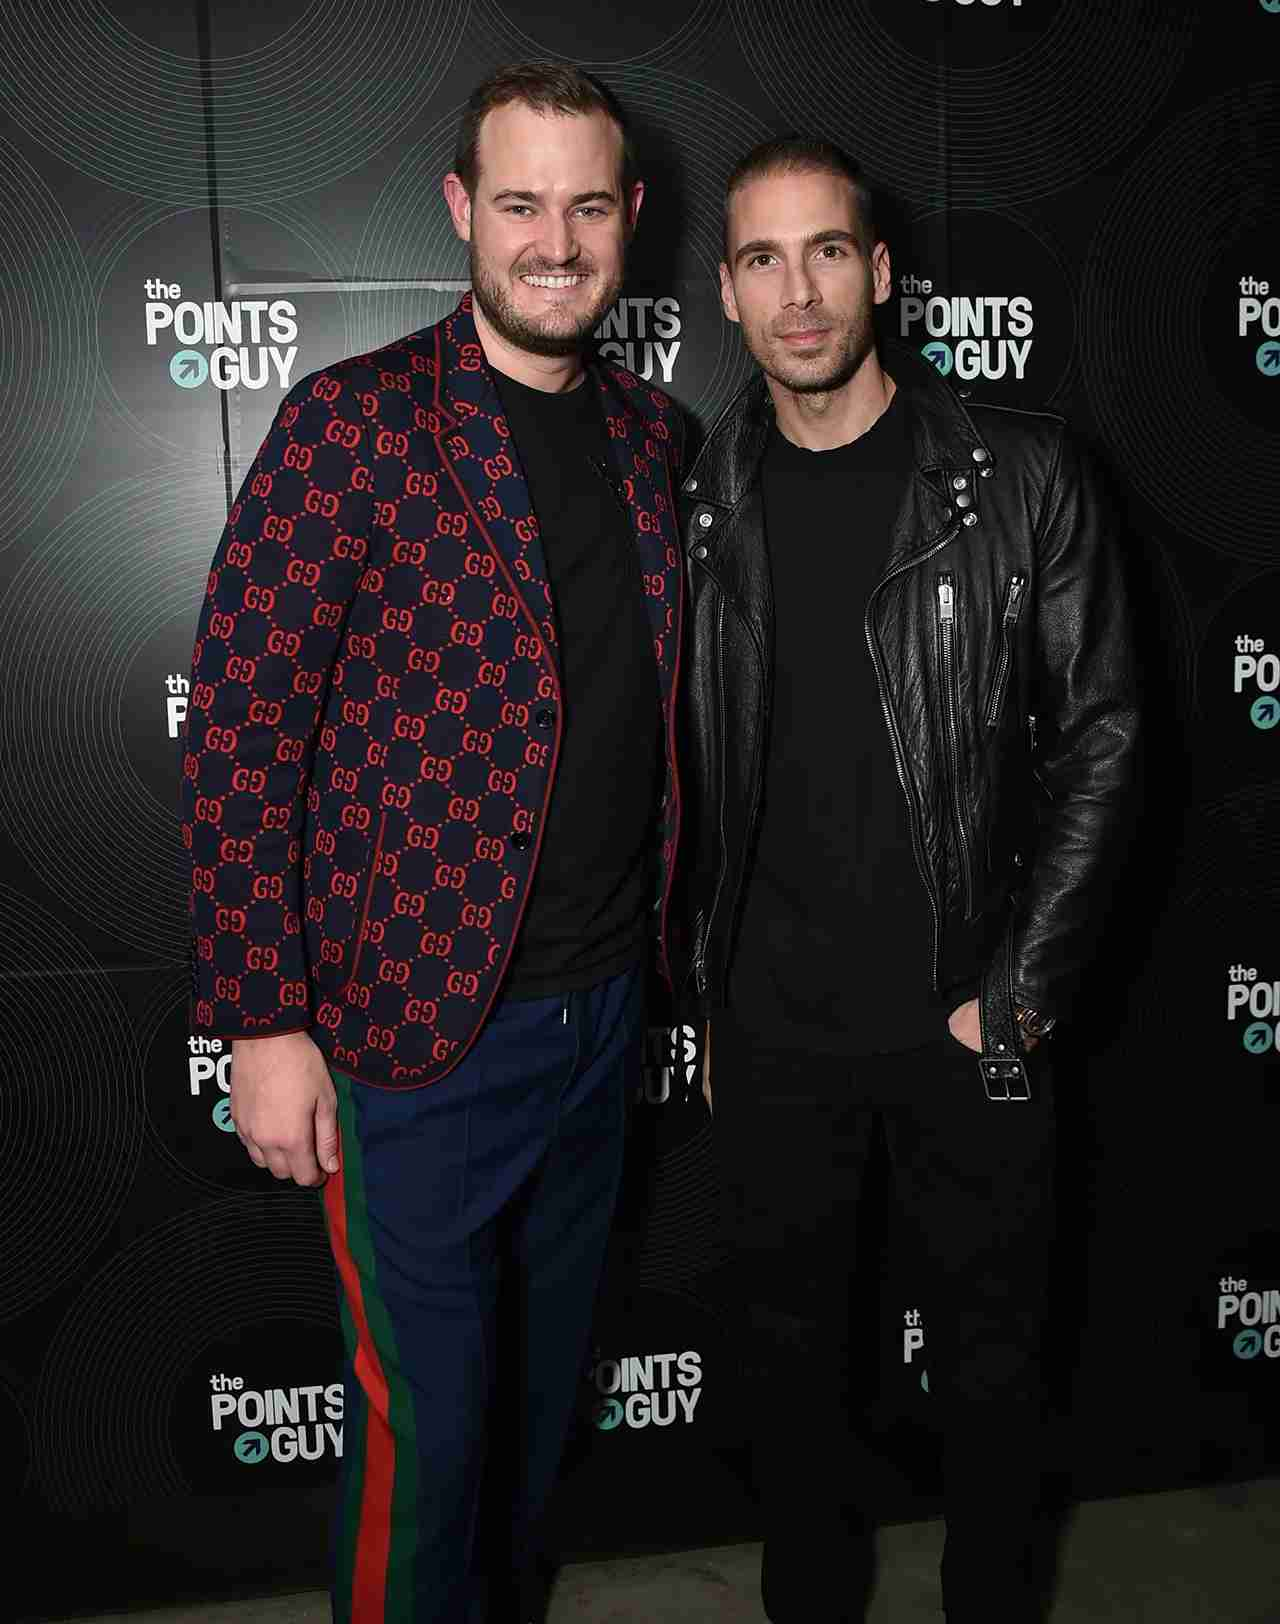 NEW YORK, NY - JANUARY 23: Founder and CEO of The Points Guy Brian Kelly (L) and Simon Huck attend The Points Guy 2018 Grammy Party with Lil Uzi Vert on January 23, 2018 in New York City. (Photo by Mike Coppola/Getty Images for The Points Guy)